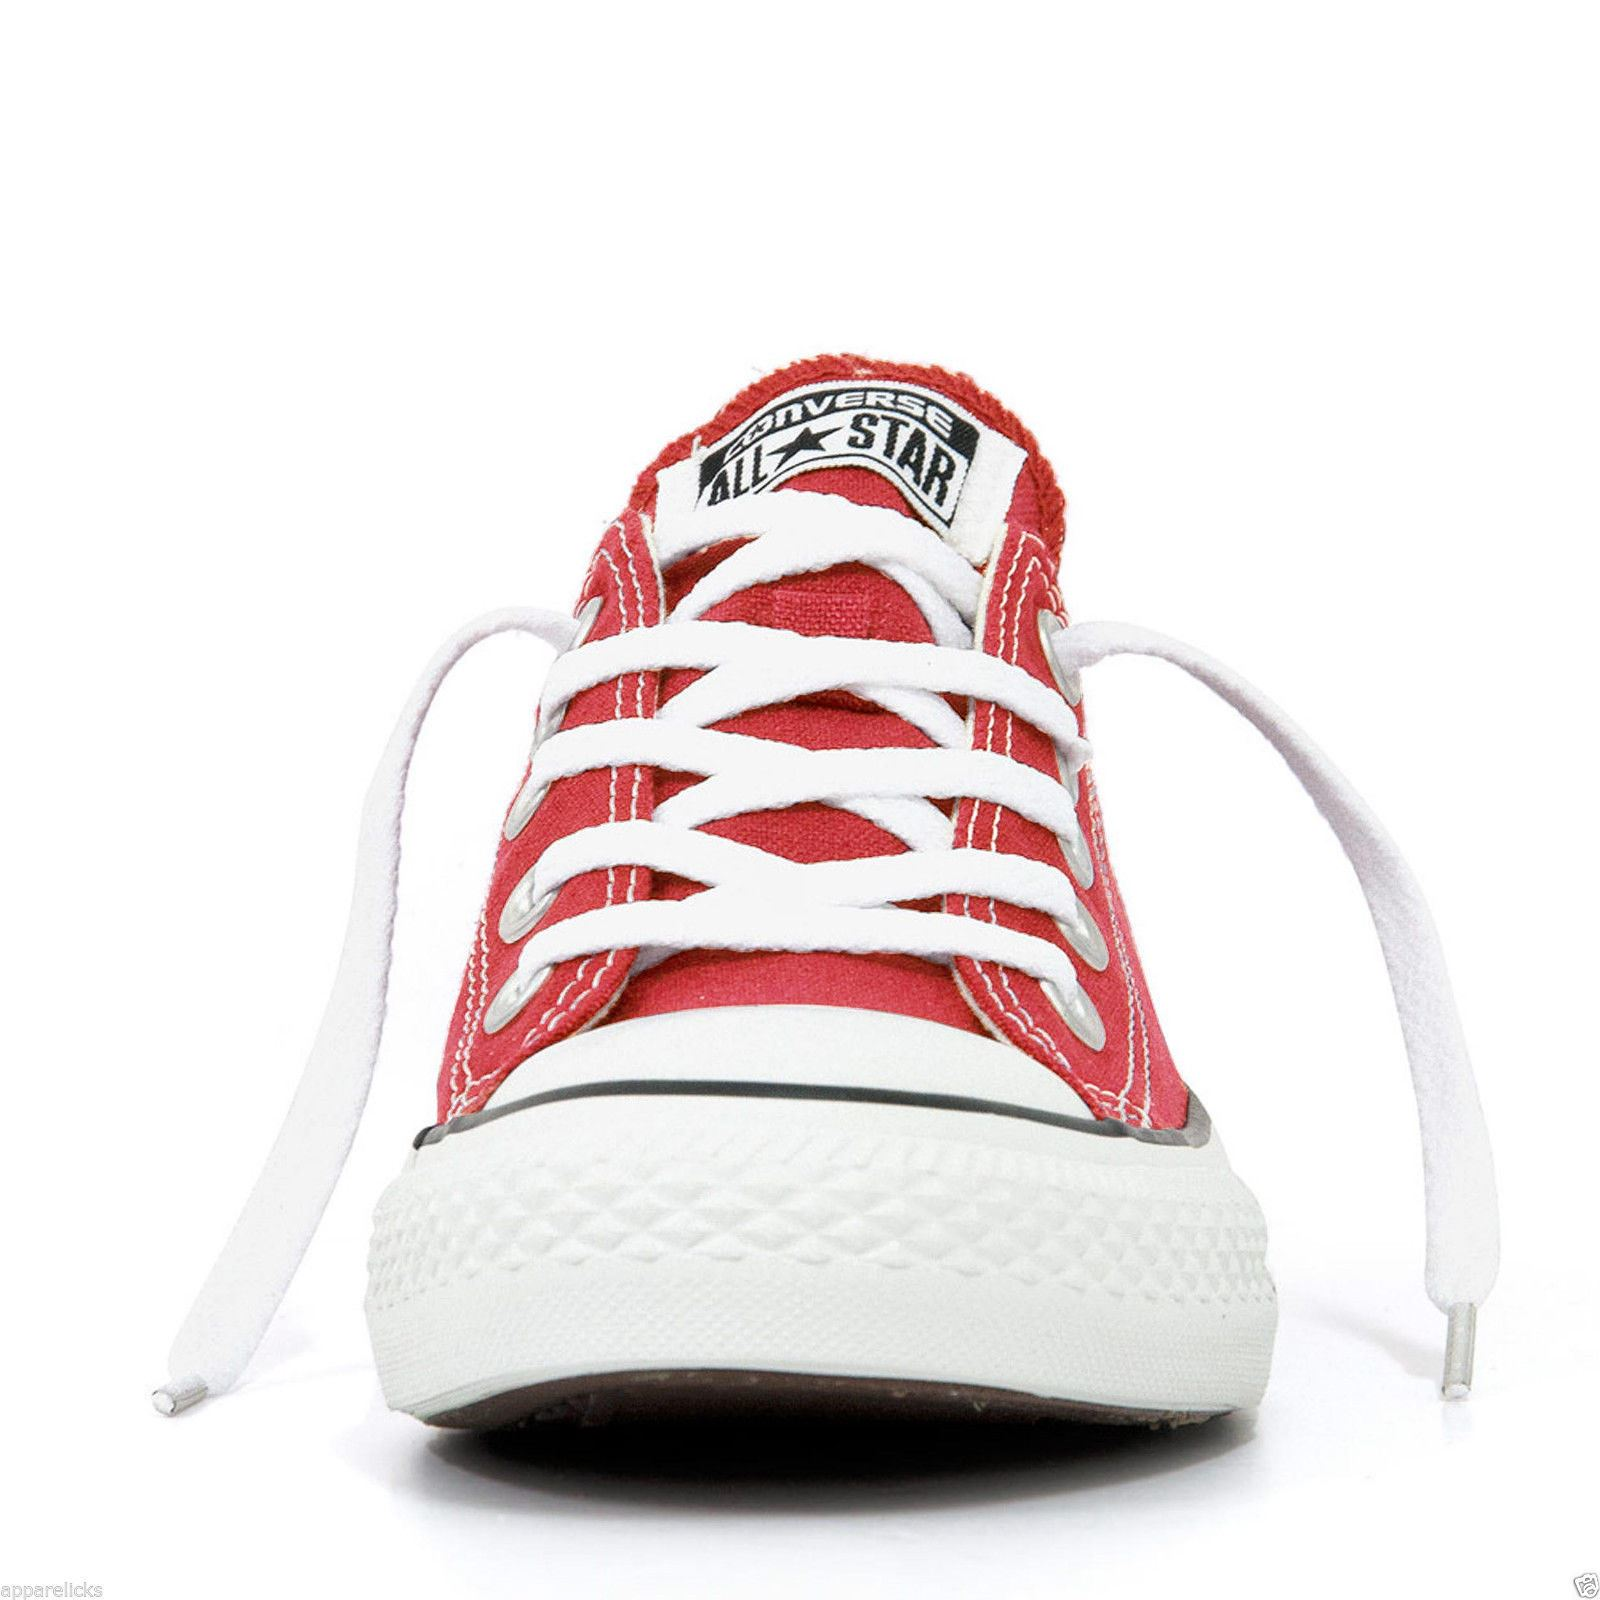 Converse-All-Star-Unisex-Chuck-Taylor-New-Mens-Womens-Low-Tops-Trainers-Pumps thumbnail 25